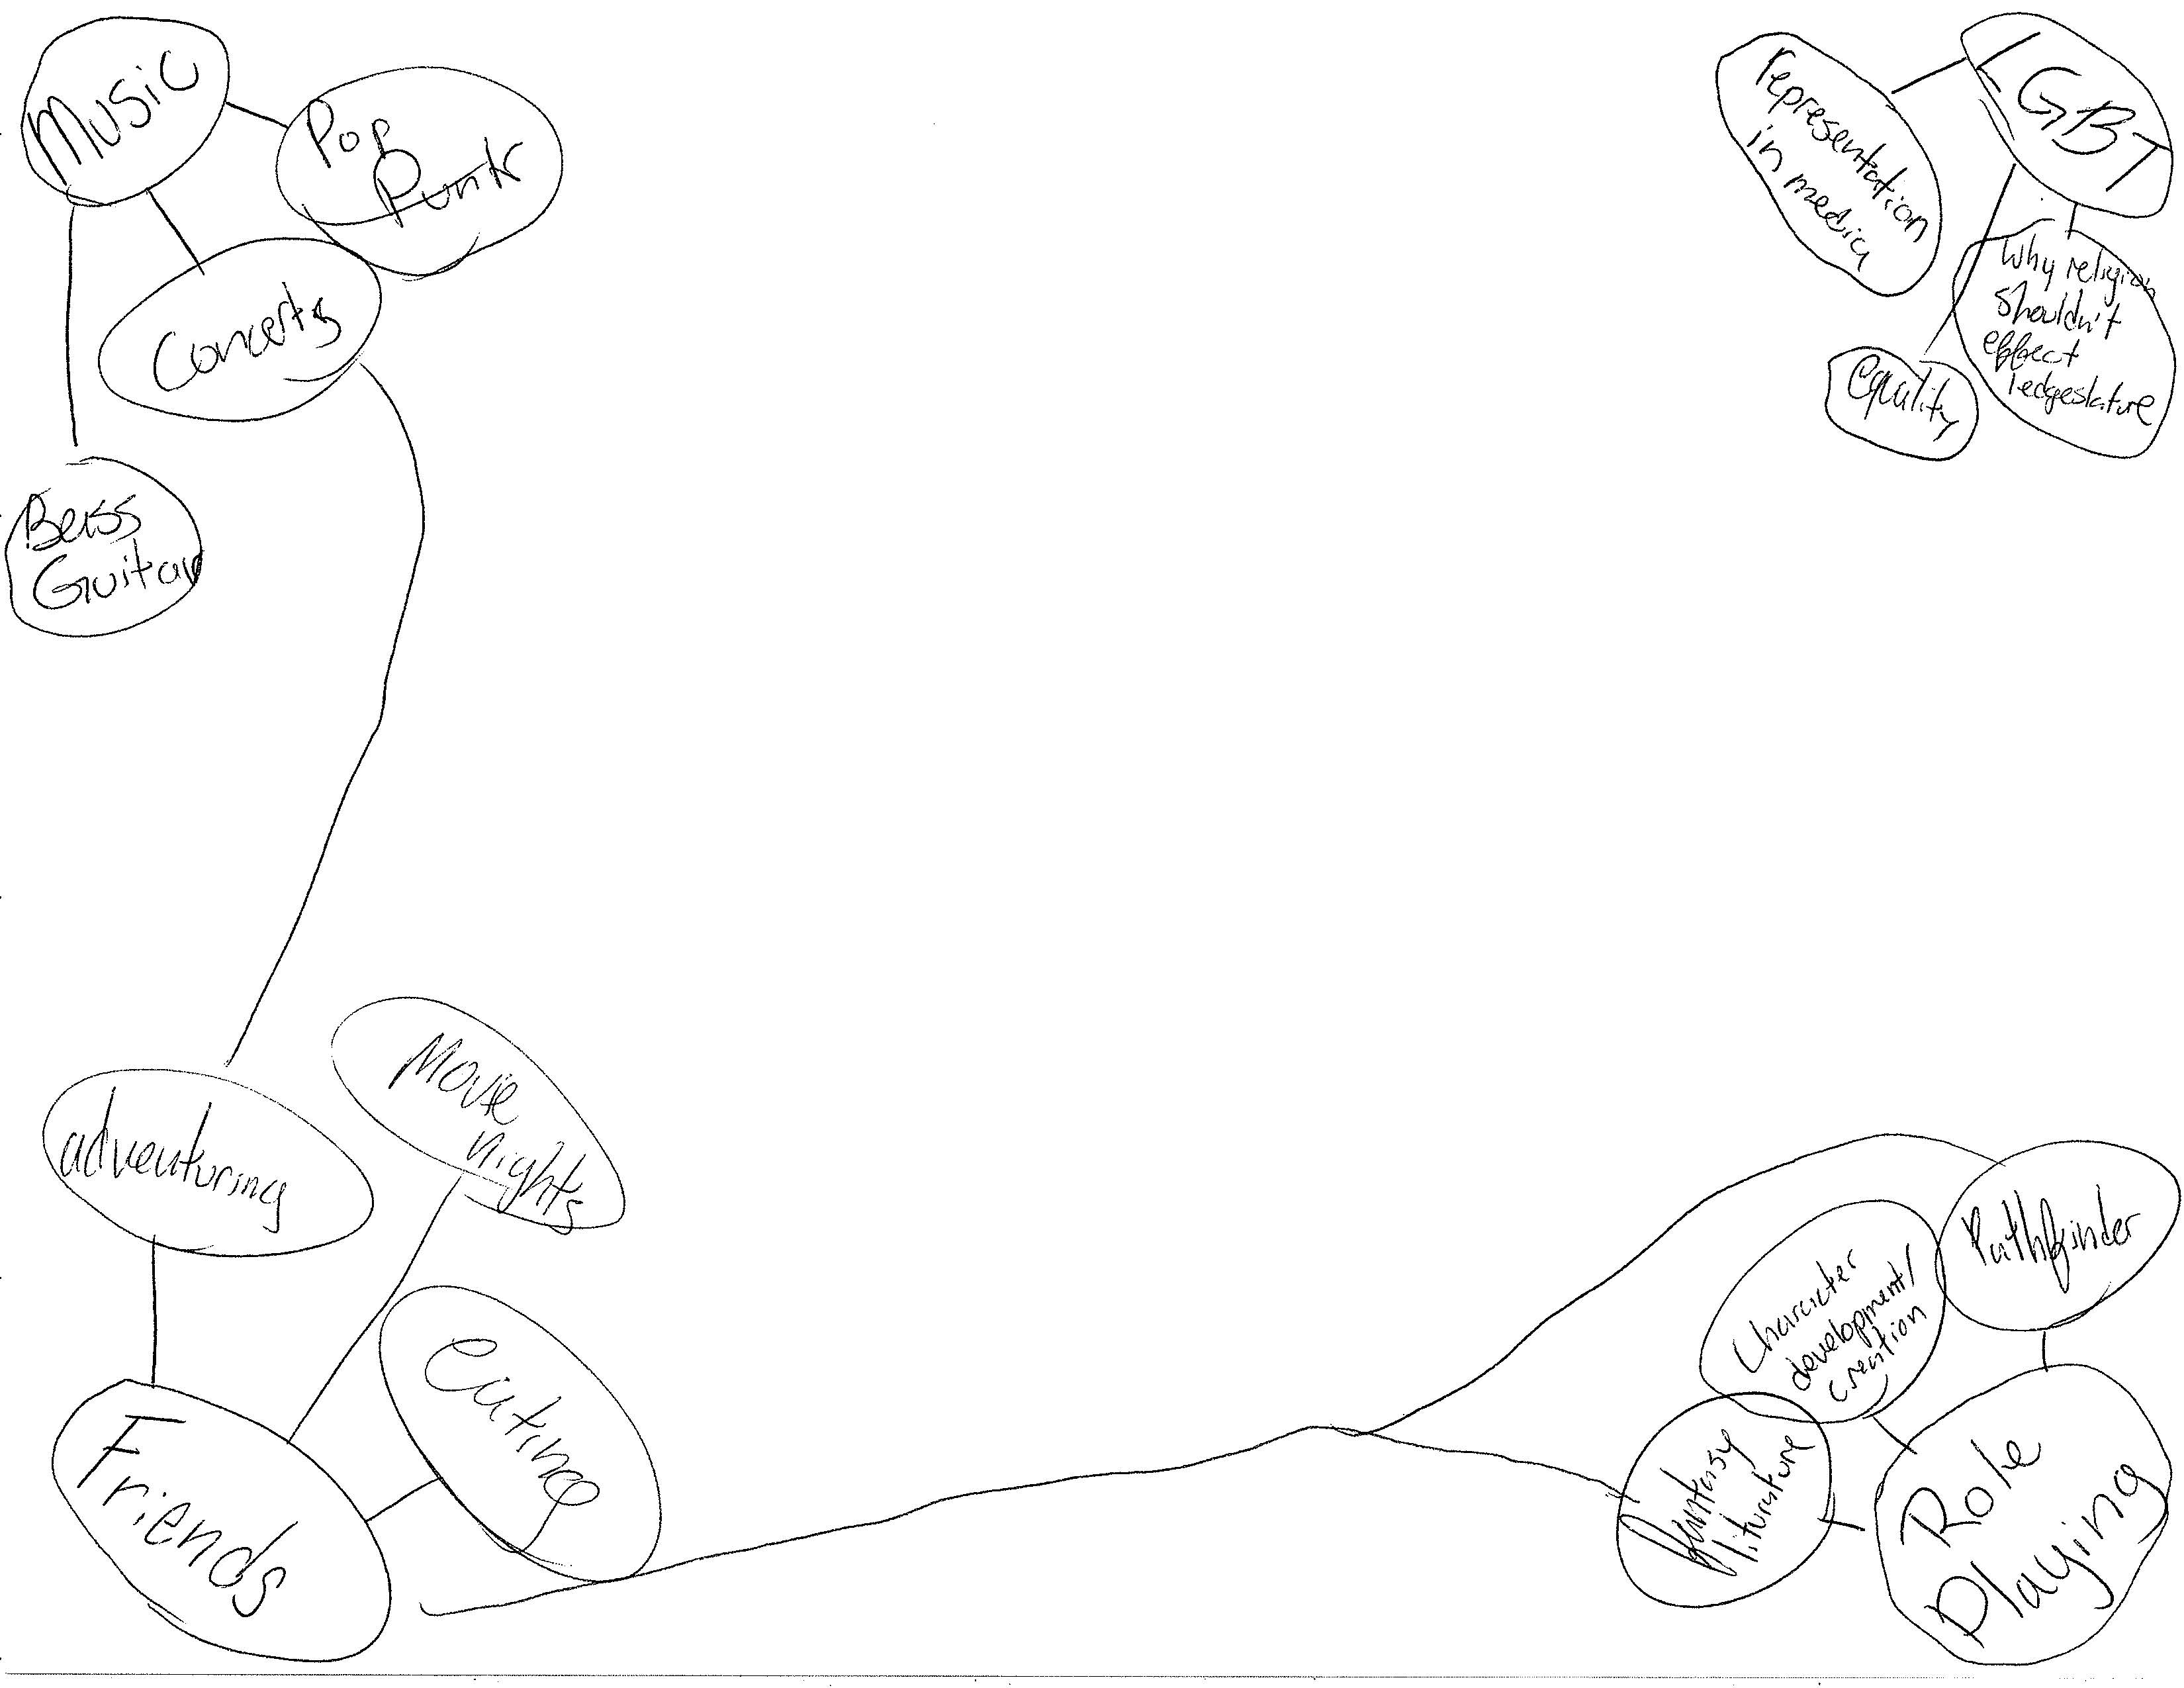 English 105 Mind Mapping Assignment Sept 23_Page_03